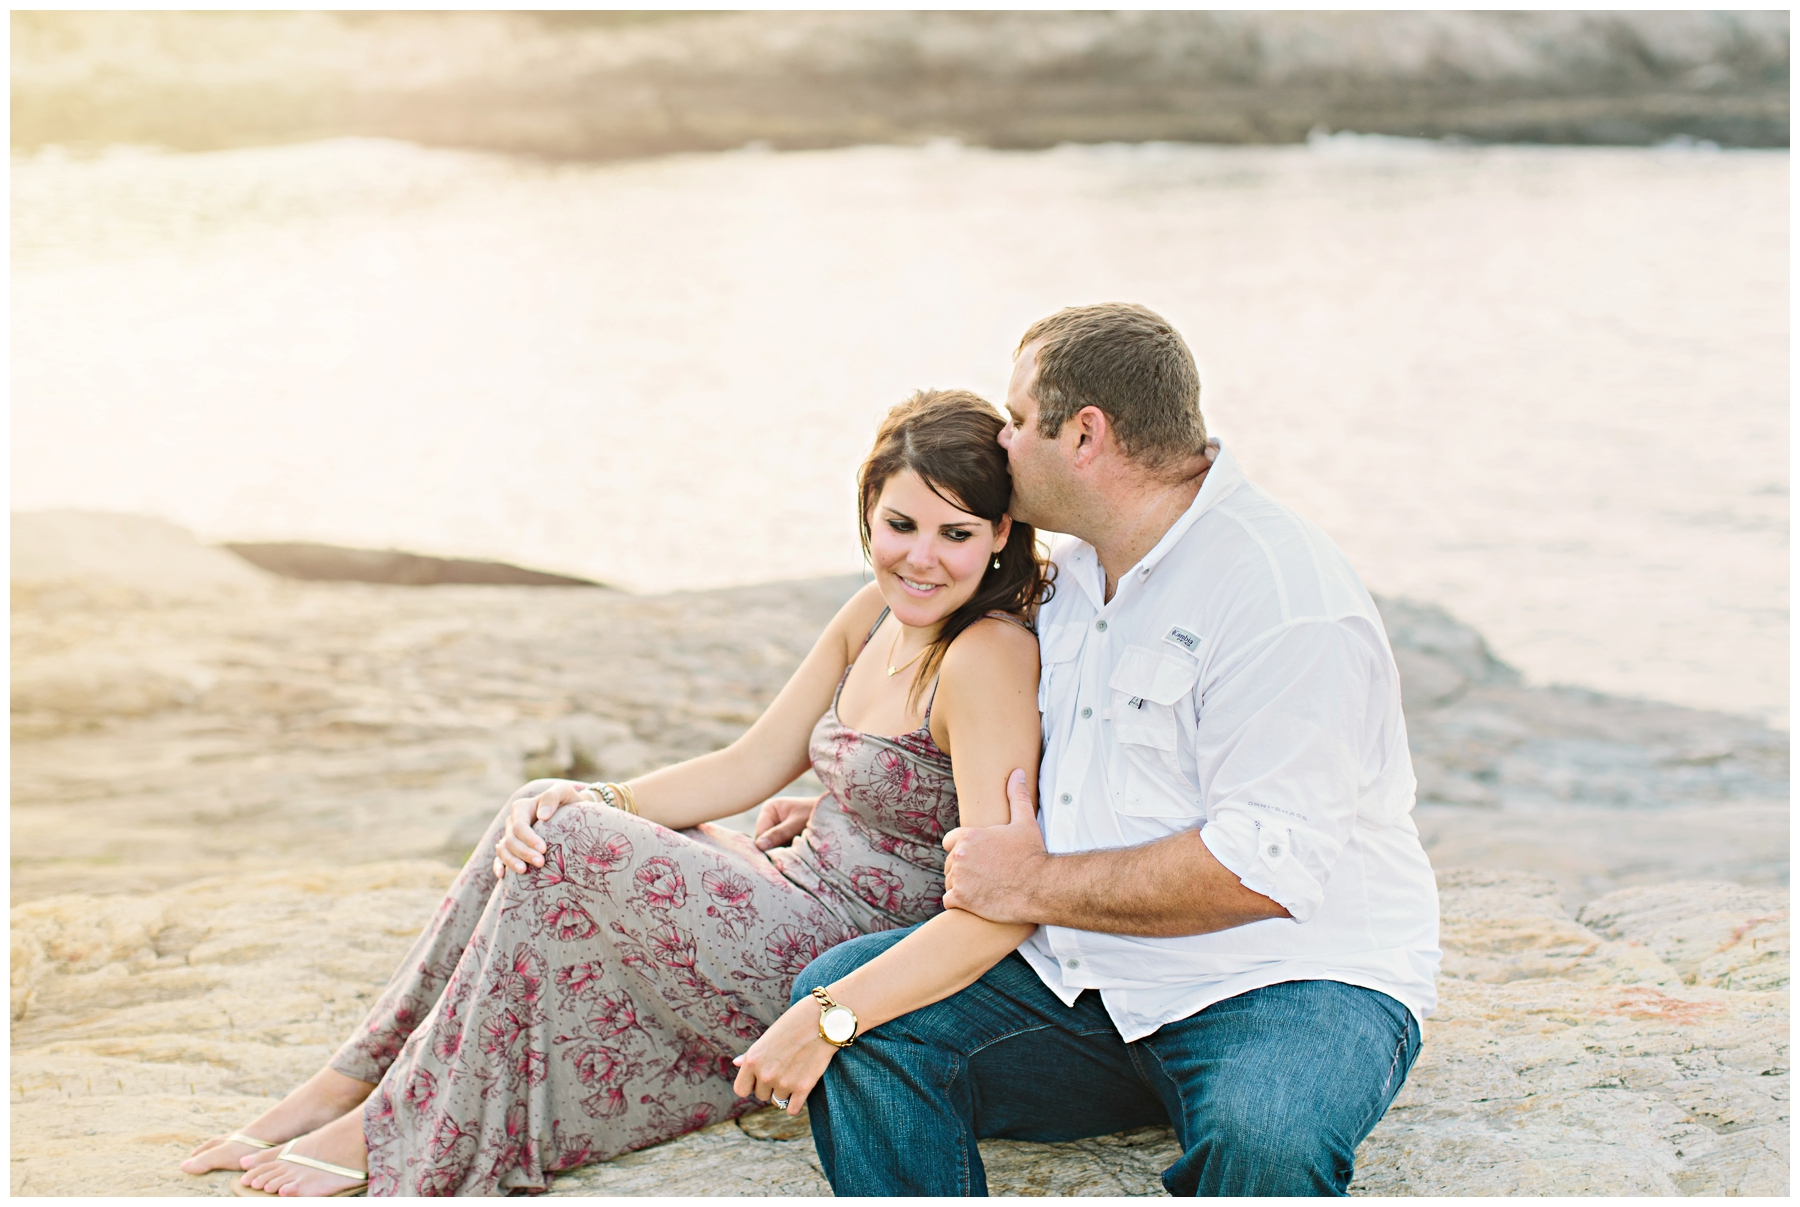 Maine_Photographer_Engagements_FortWilliams_PortlandHeadLight_lighthouse_coastal_seaside-022